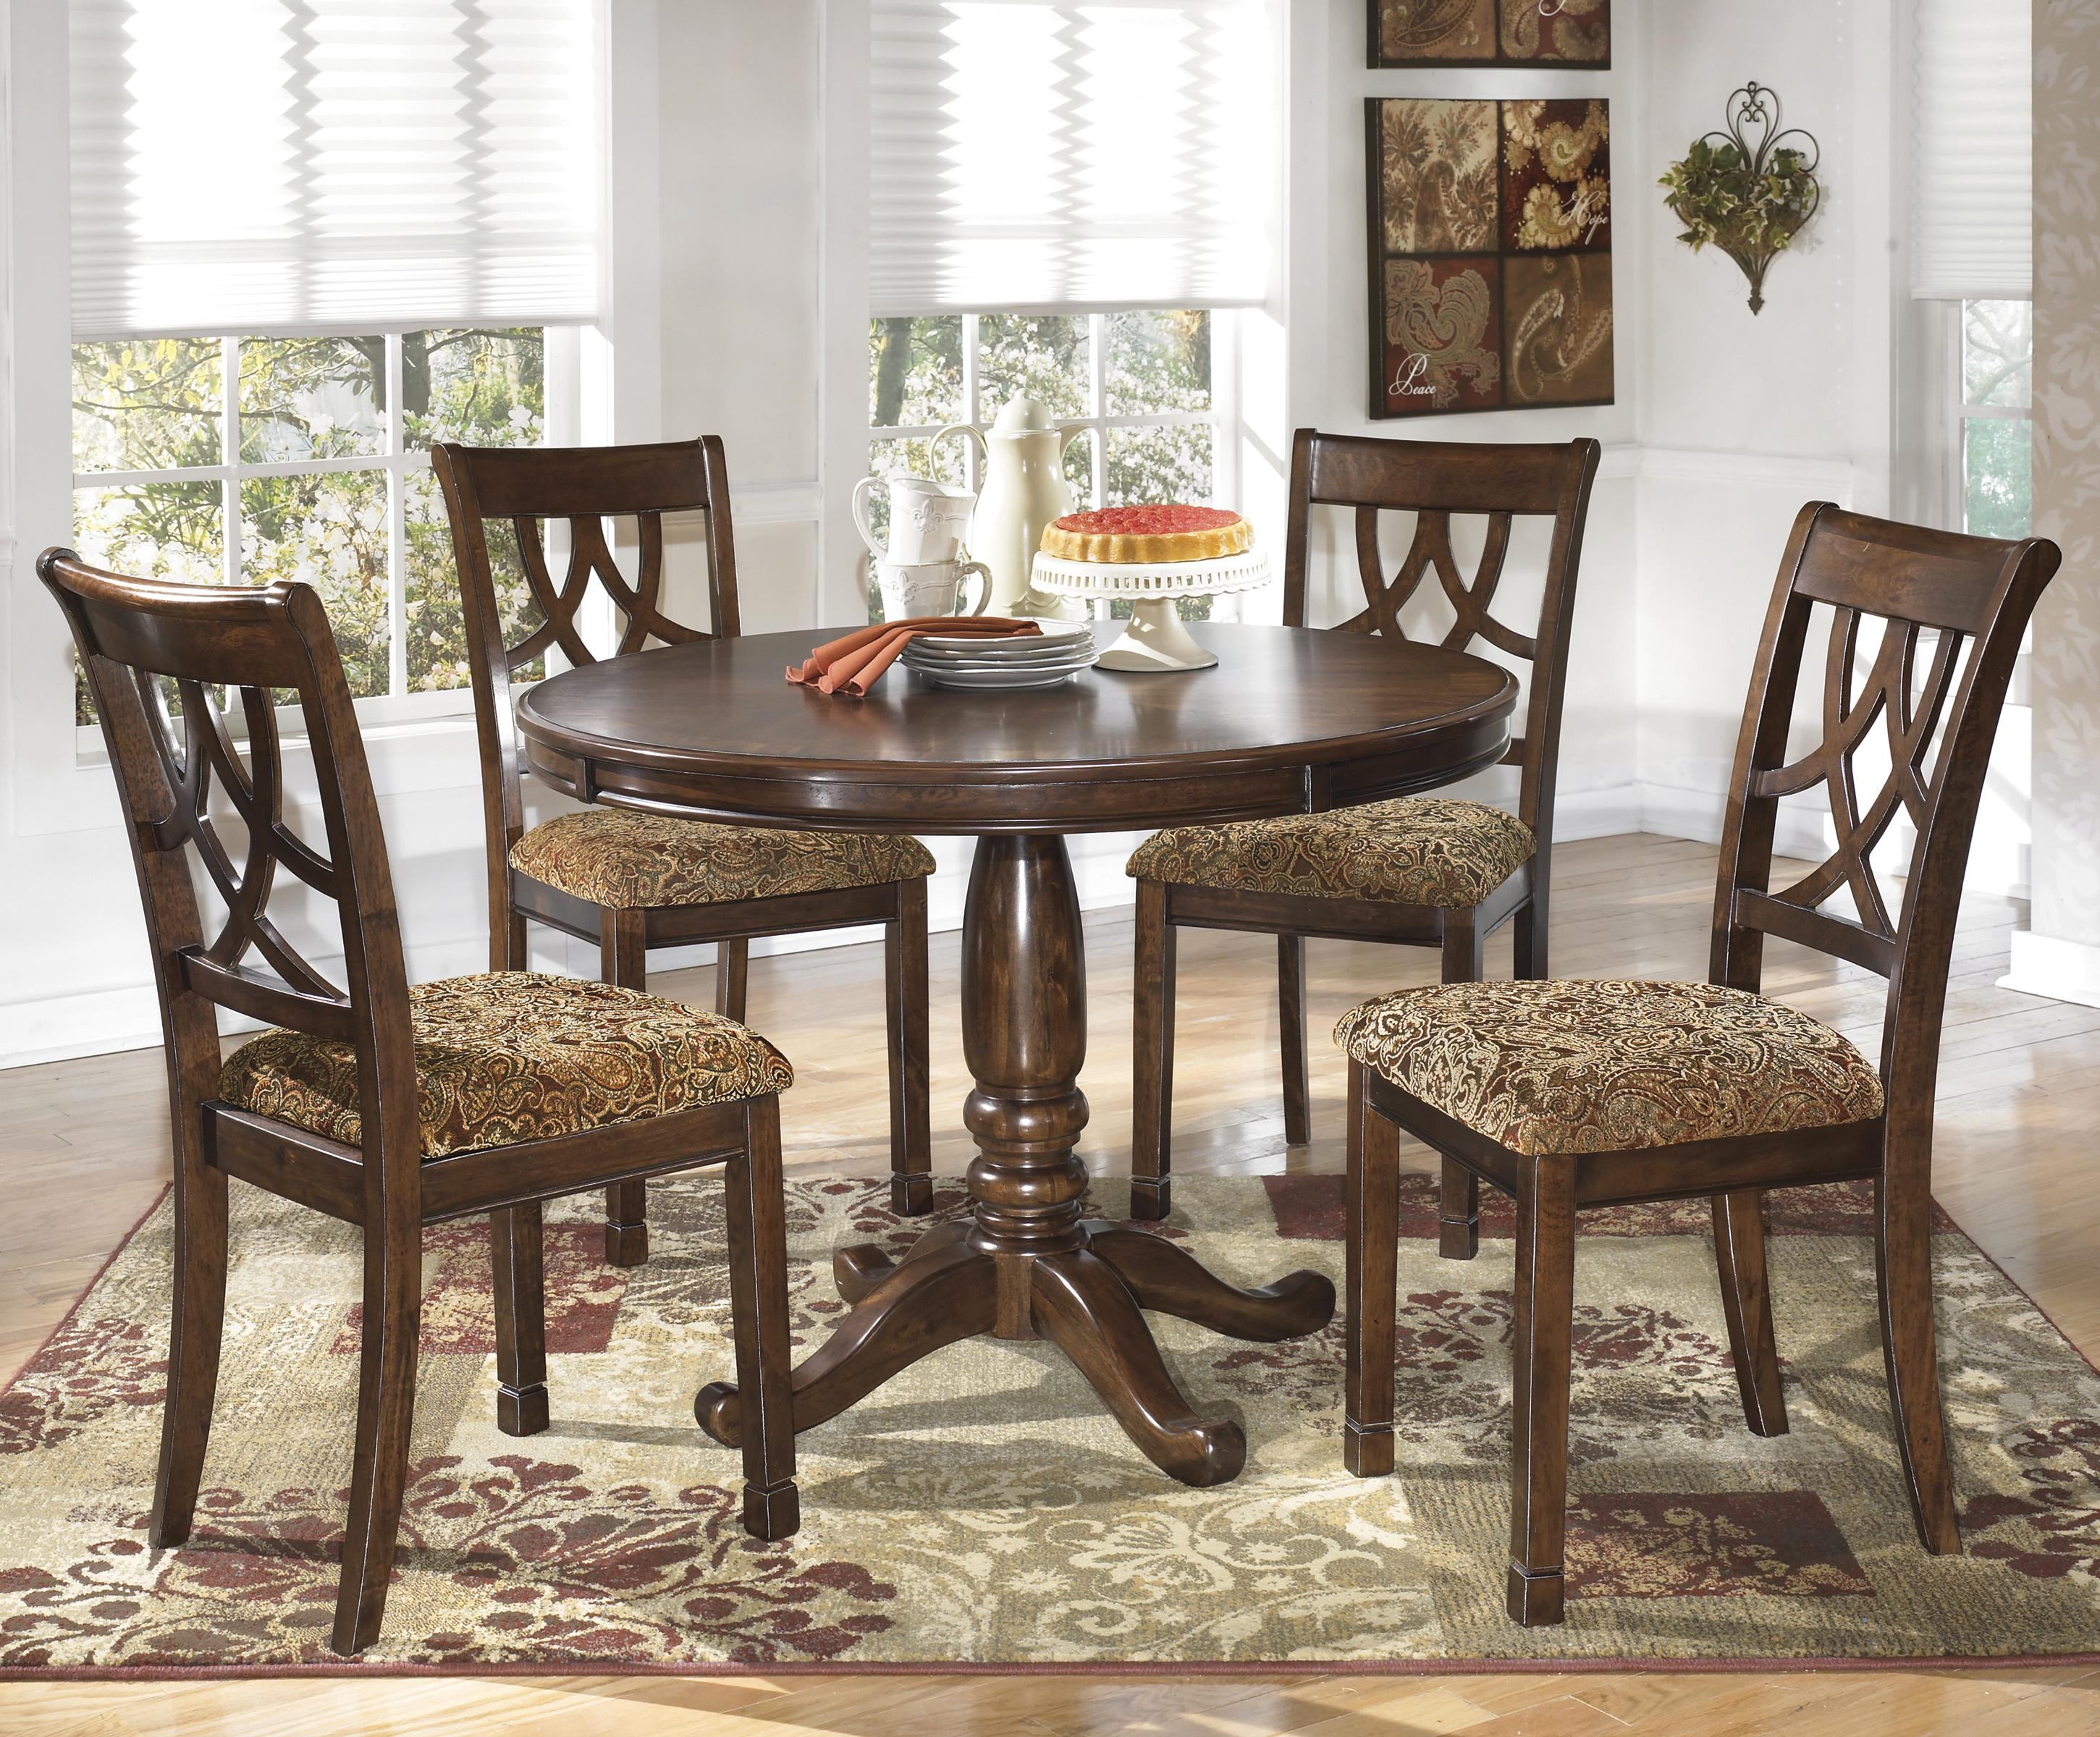 round kitchen table sets Signature Design by Ashley Leahlyn 5 Piece Round Dining Table Set Item Number